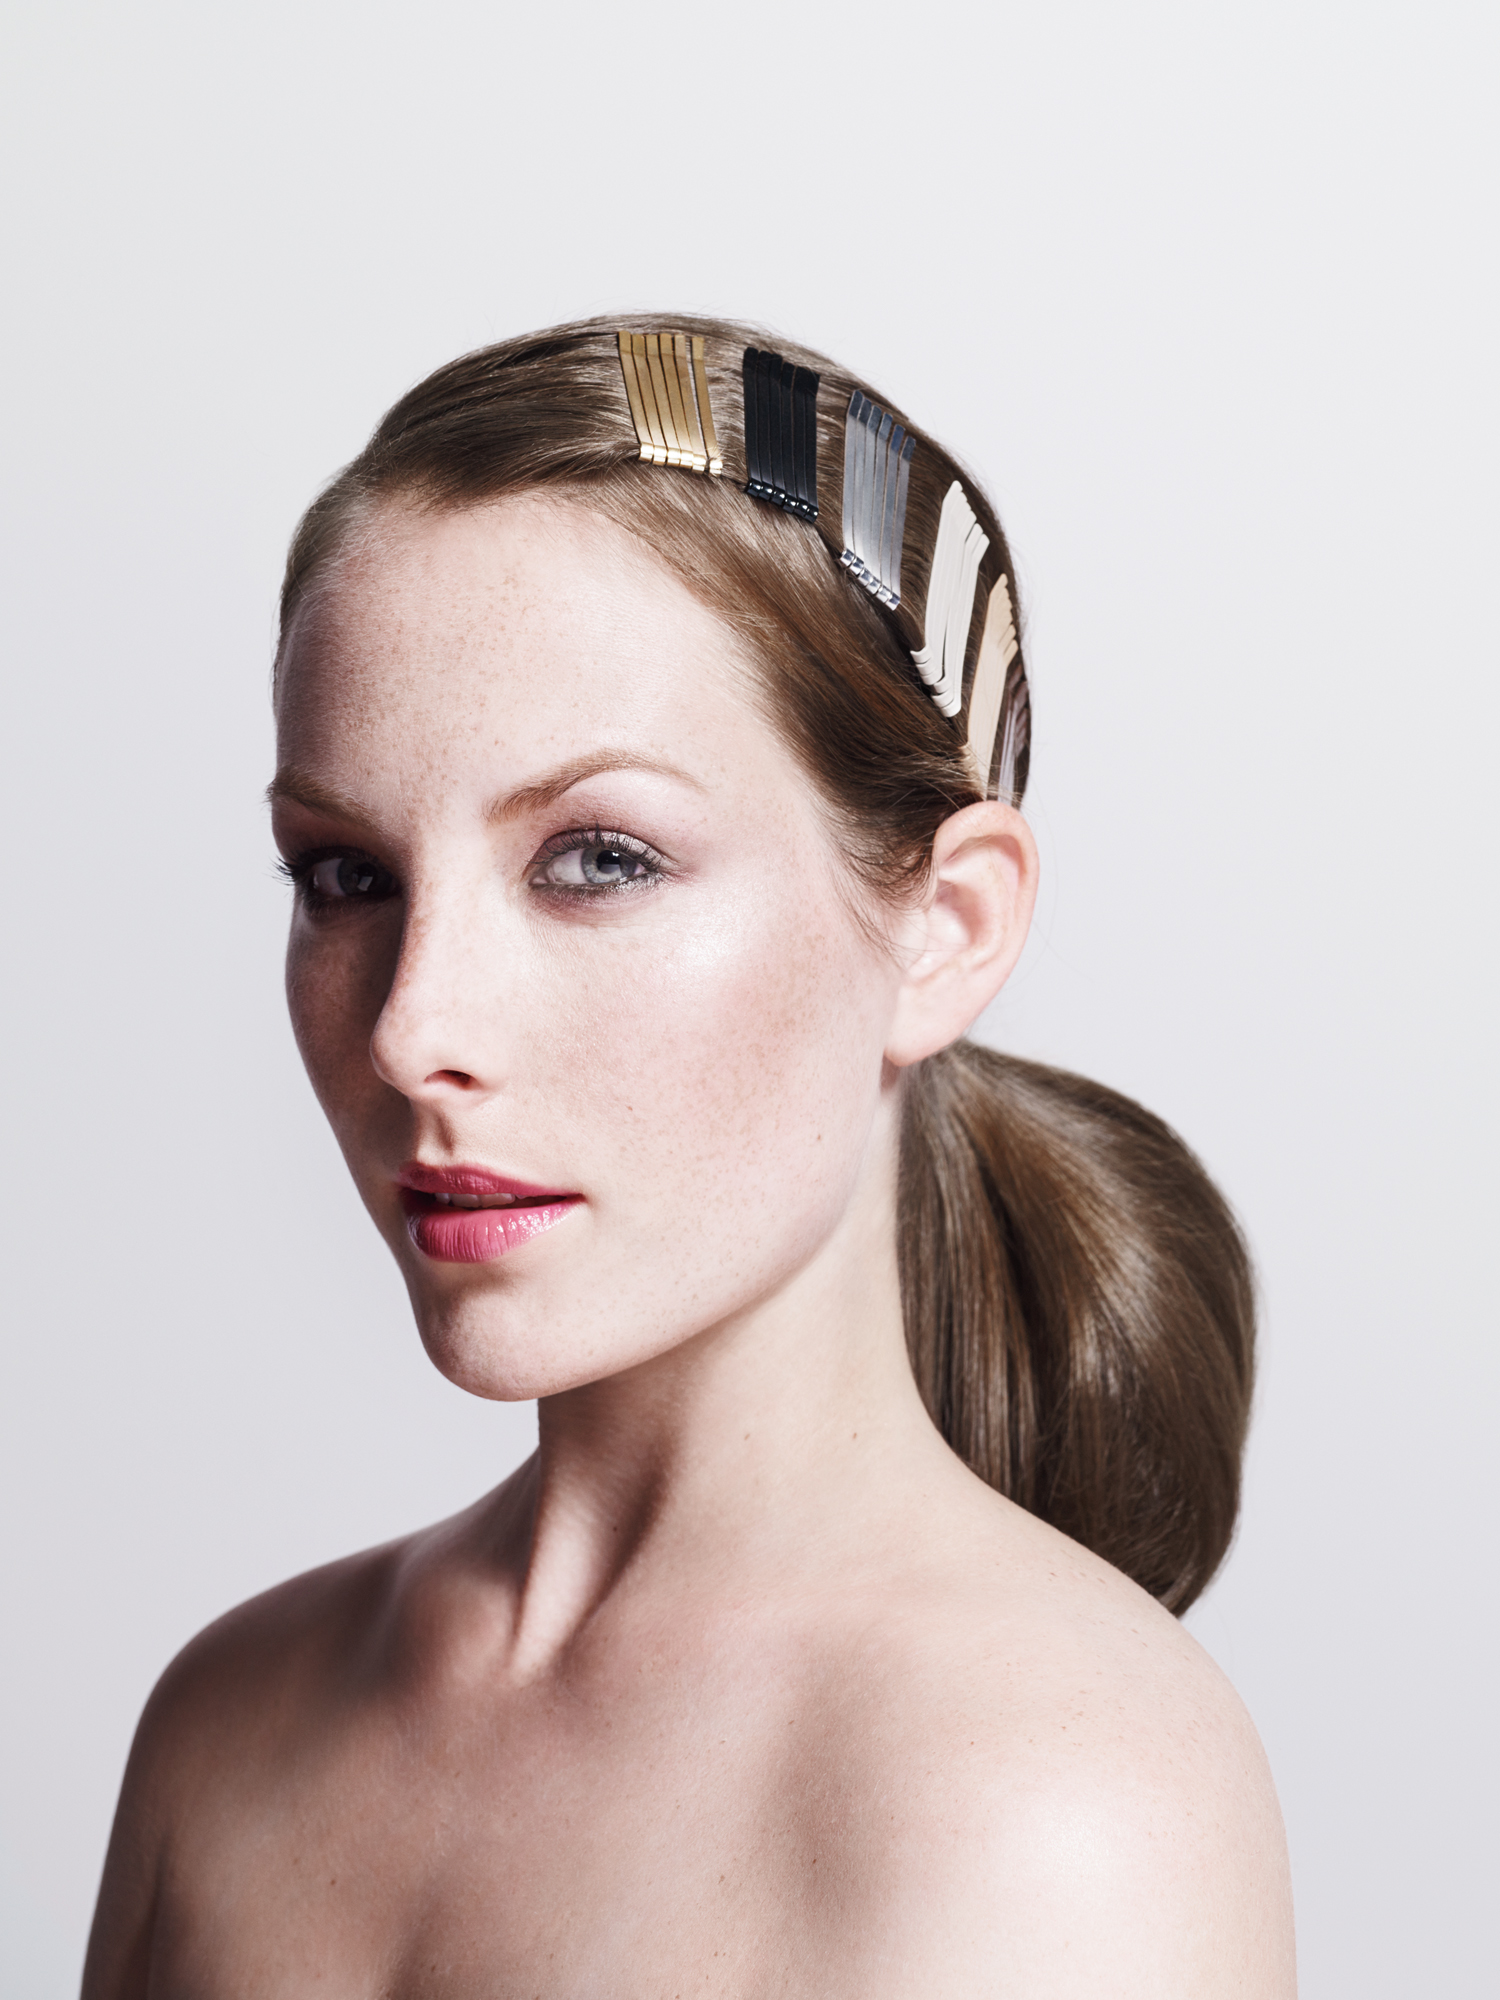 Model with bands of different-colored bobby pins